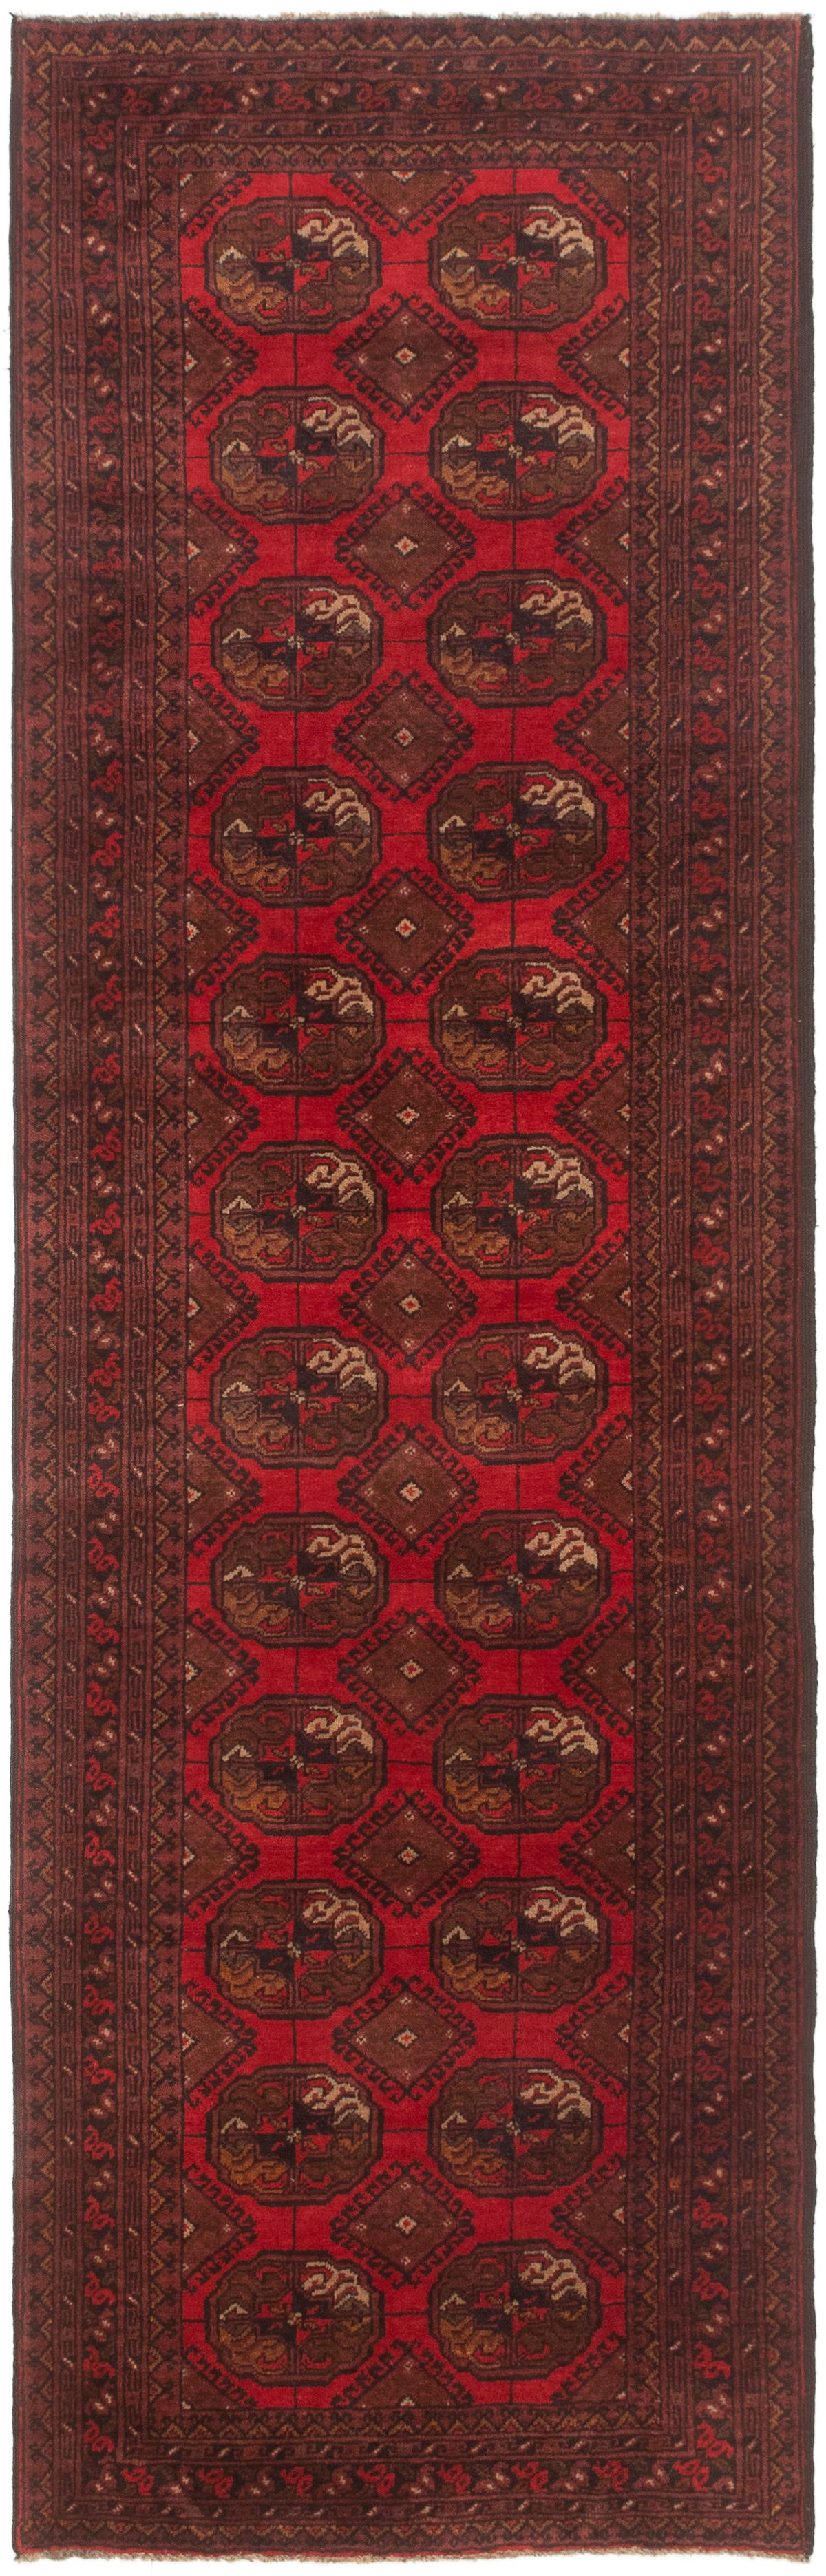 """Hand-knotted Teimani Red Wool Rug 2'8"""" x 8'11"""" Size: 2'8"""" x 8'11"""""""